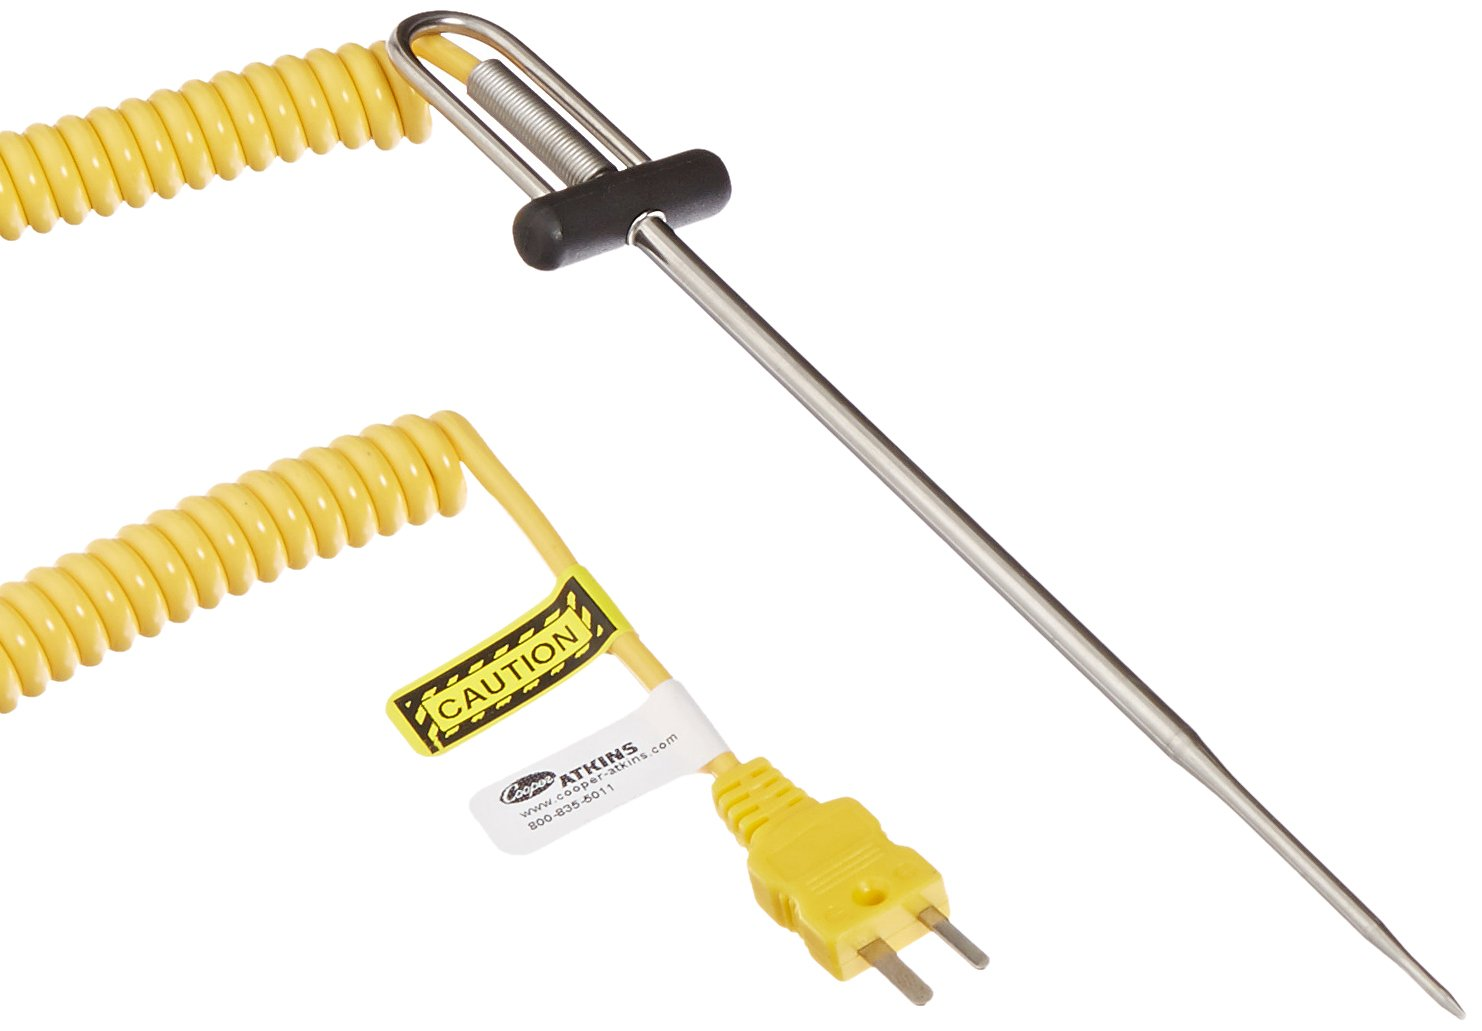 Cooper-Atkins 50336-K Type K DuraNeedle Thermocouple Probe with Polyurethane Jacket Cable, -40 to +500 degrees F Temperature Range